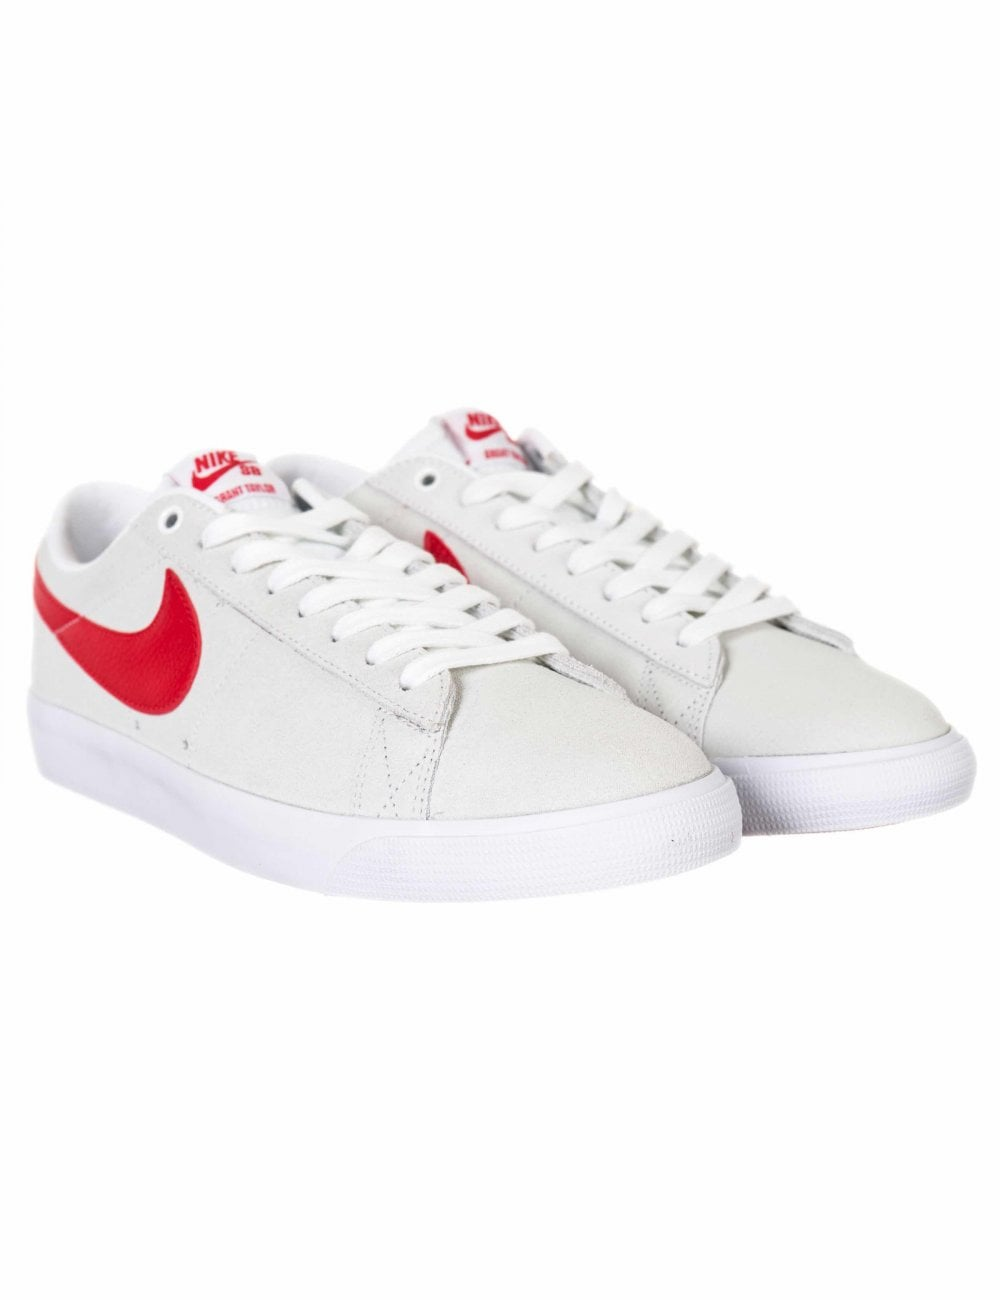 reputable site d066c 97f3e Zoom Blazer Low GT Shoes - White/University Red